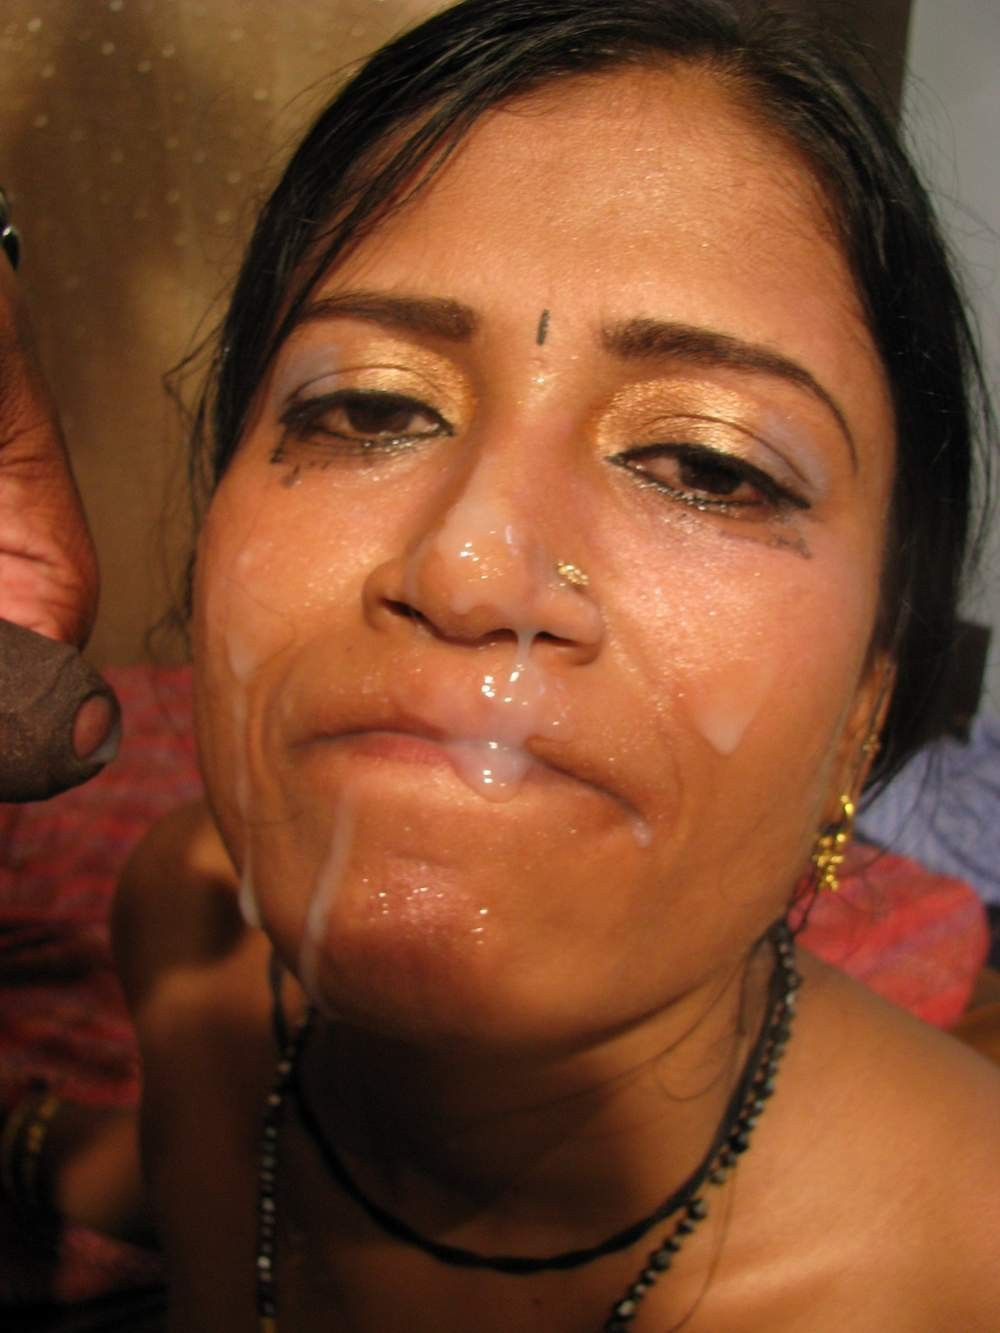 Girl arab women naked with cum on face birthday